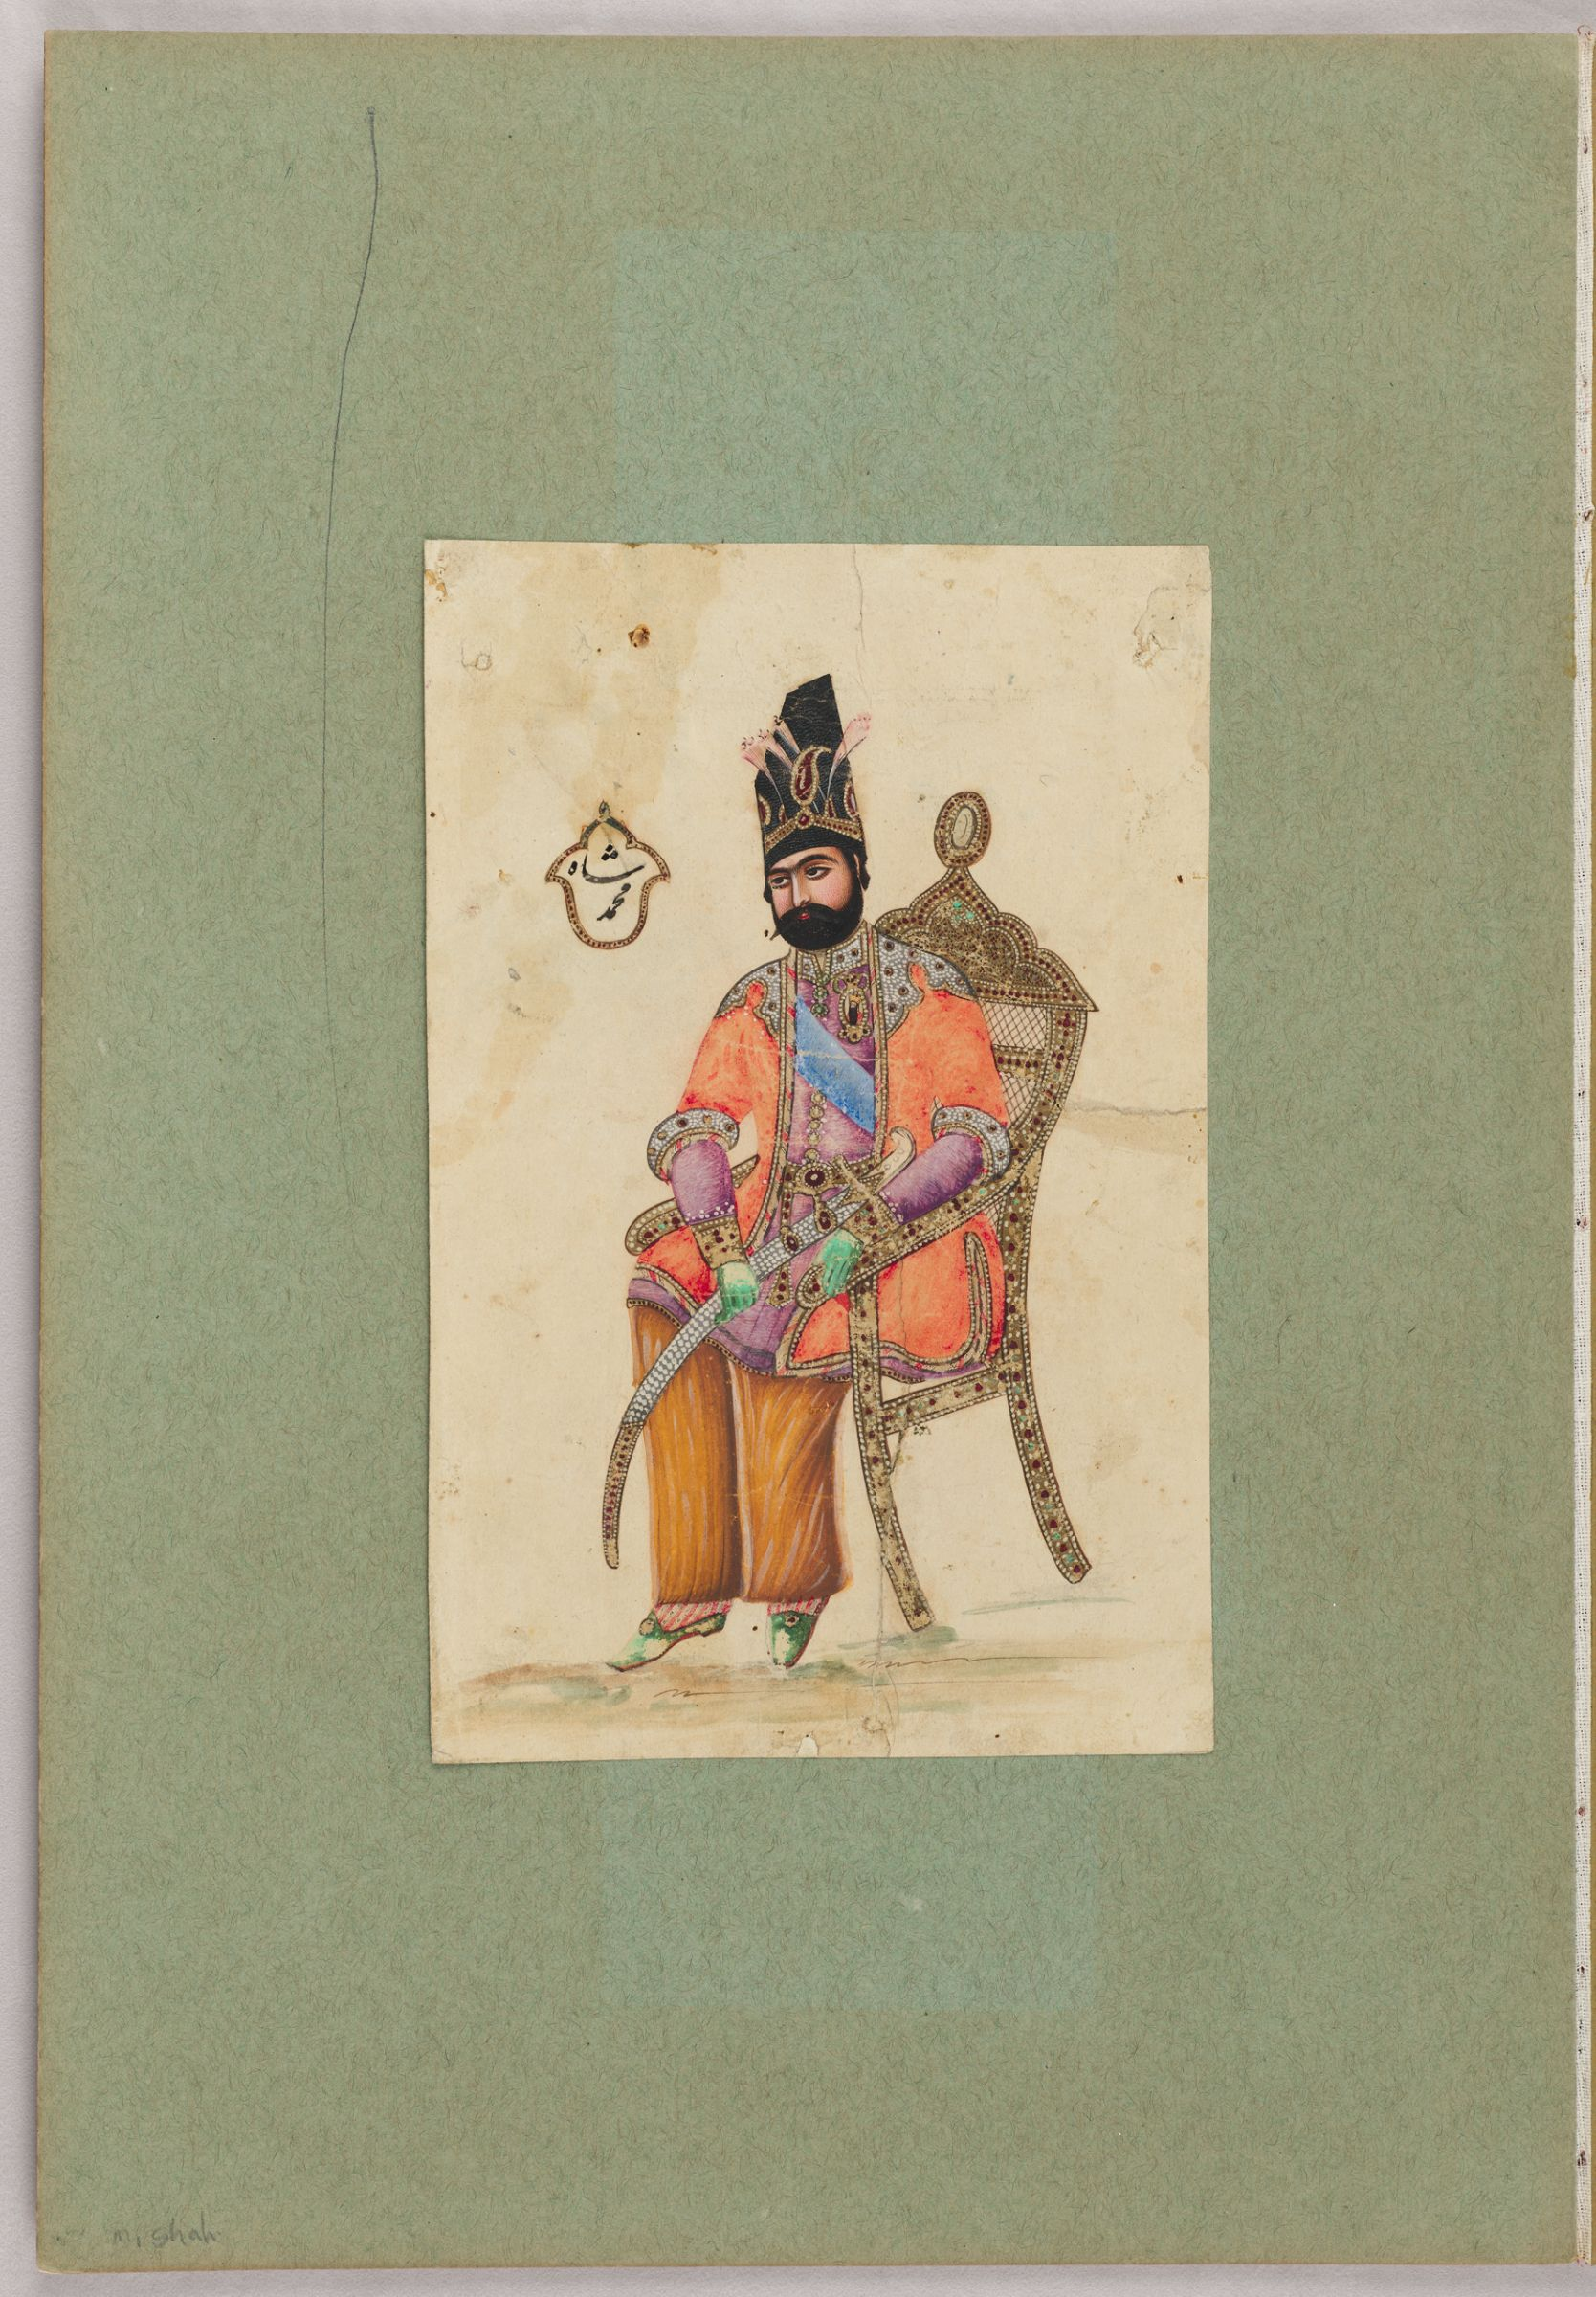 Portrait of Muhammad Shah Qajar, Seated on a Chair, mid-19th century.